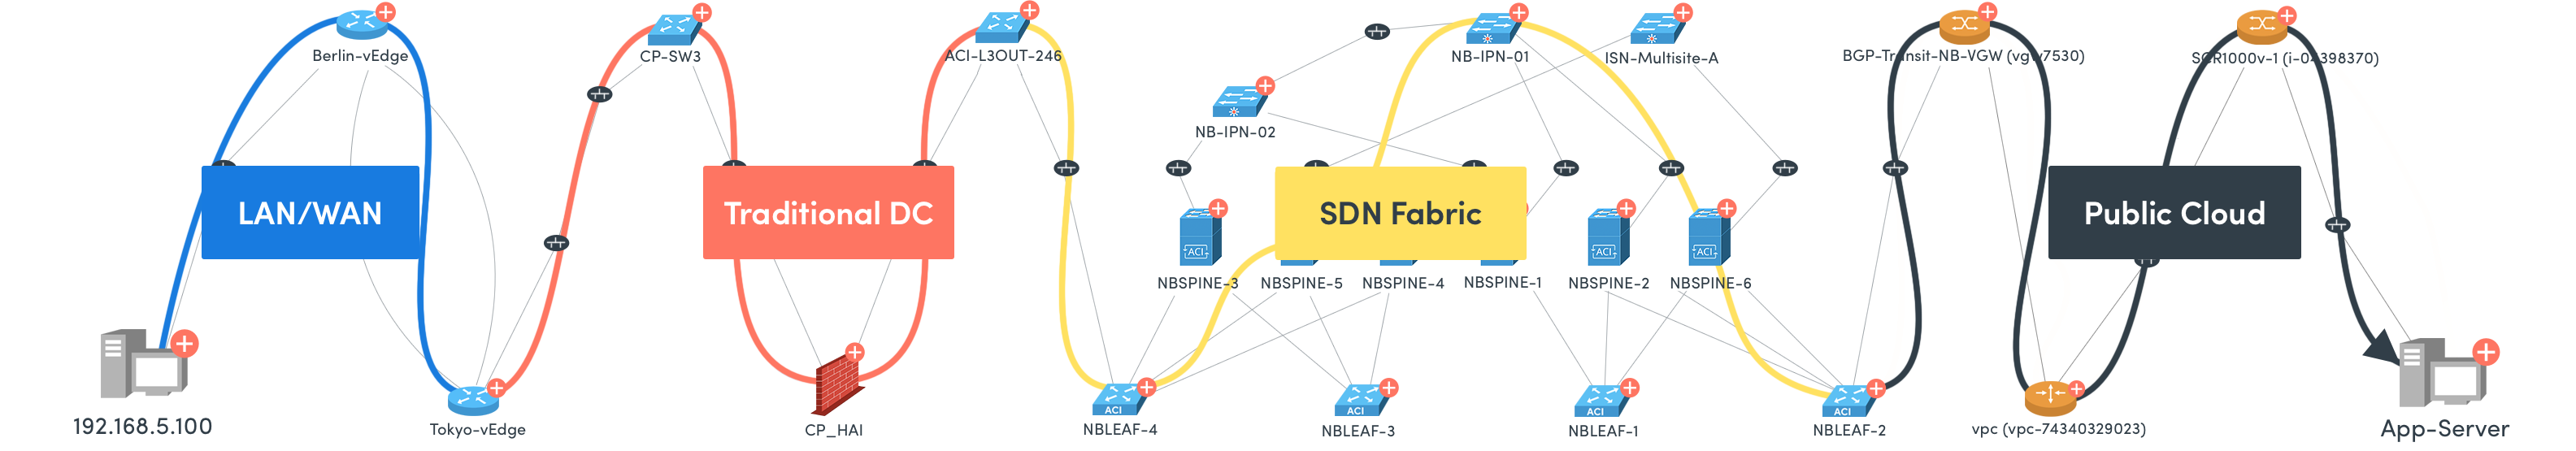 NetBrain End-to-End Network Visibility Process Diagram